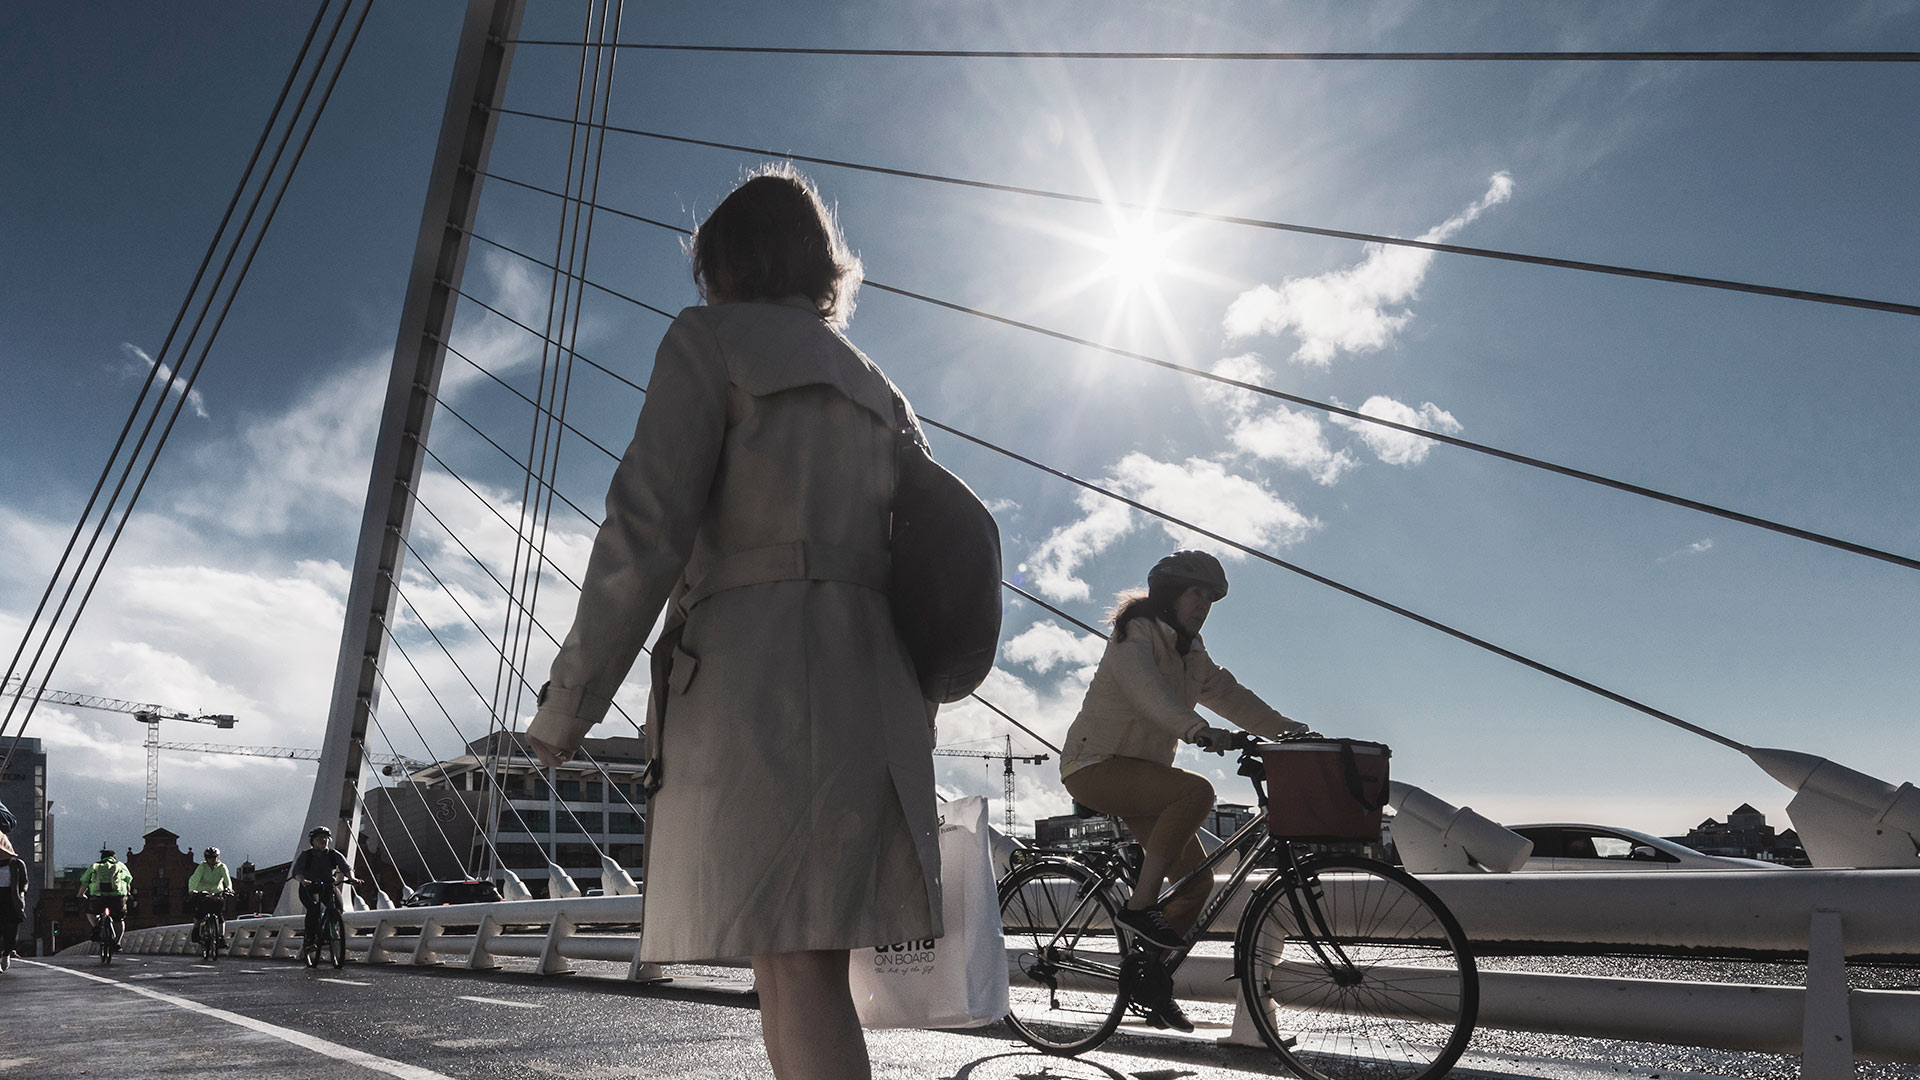 Cyclist and pedestrians cross Samuel Beckett Bridge in Dublin's Docklands